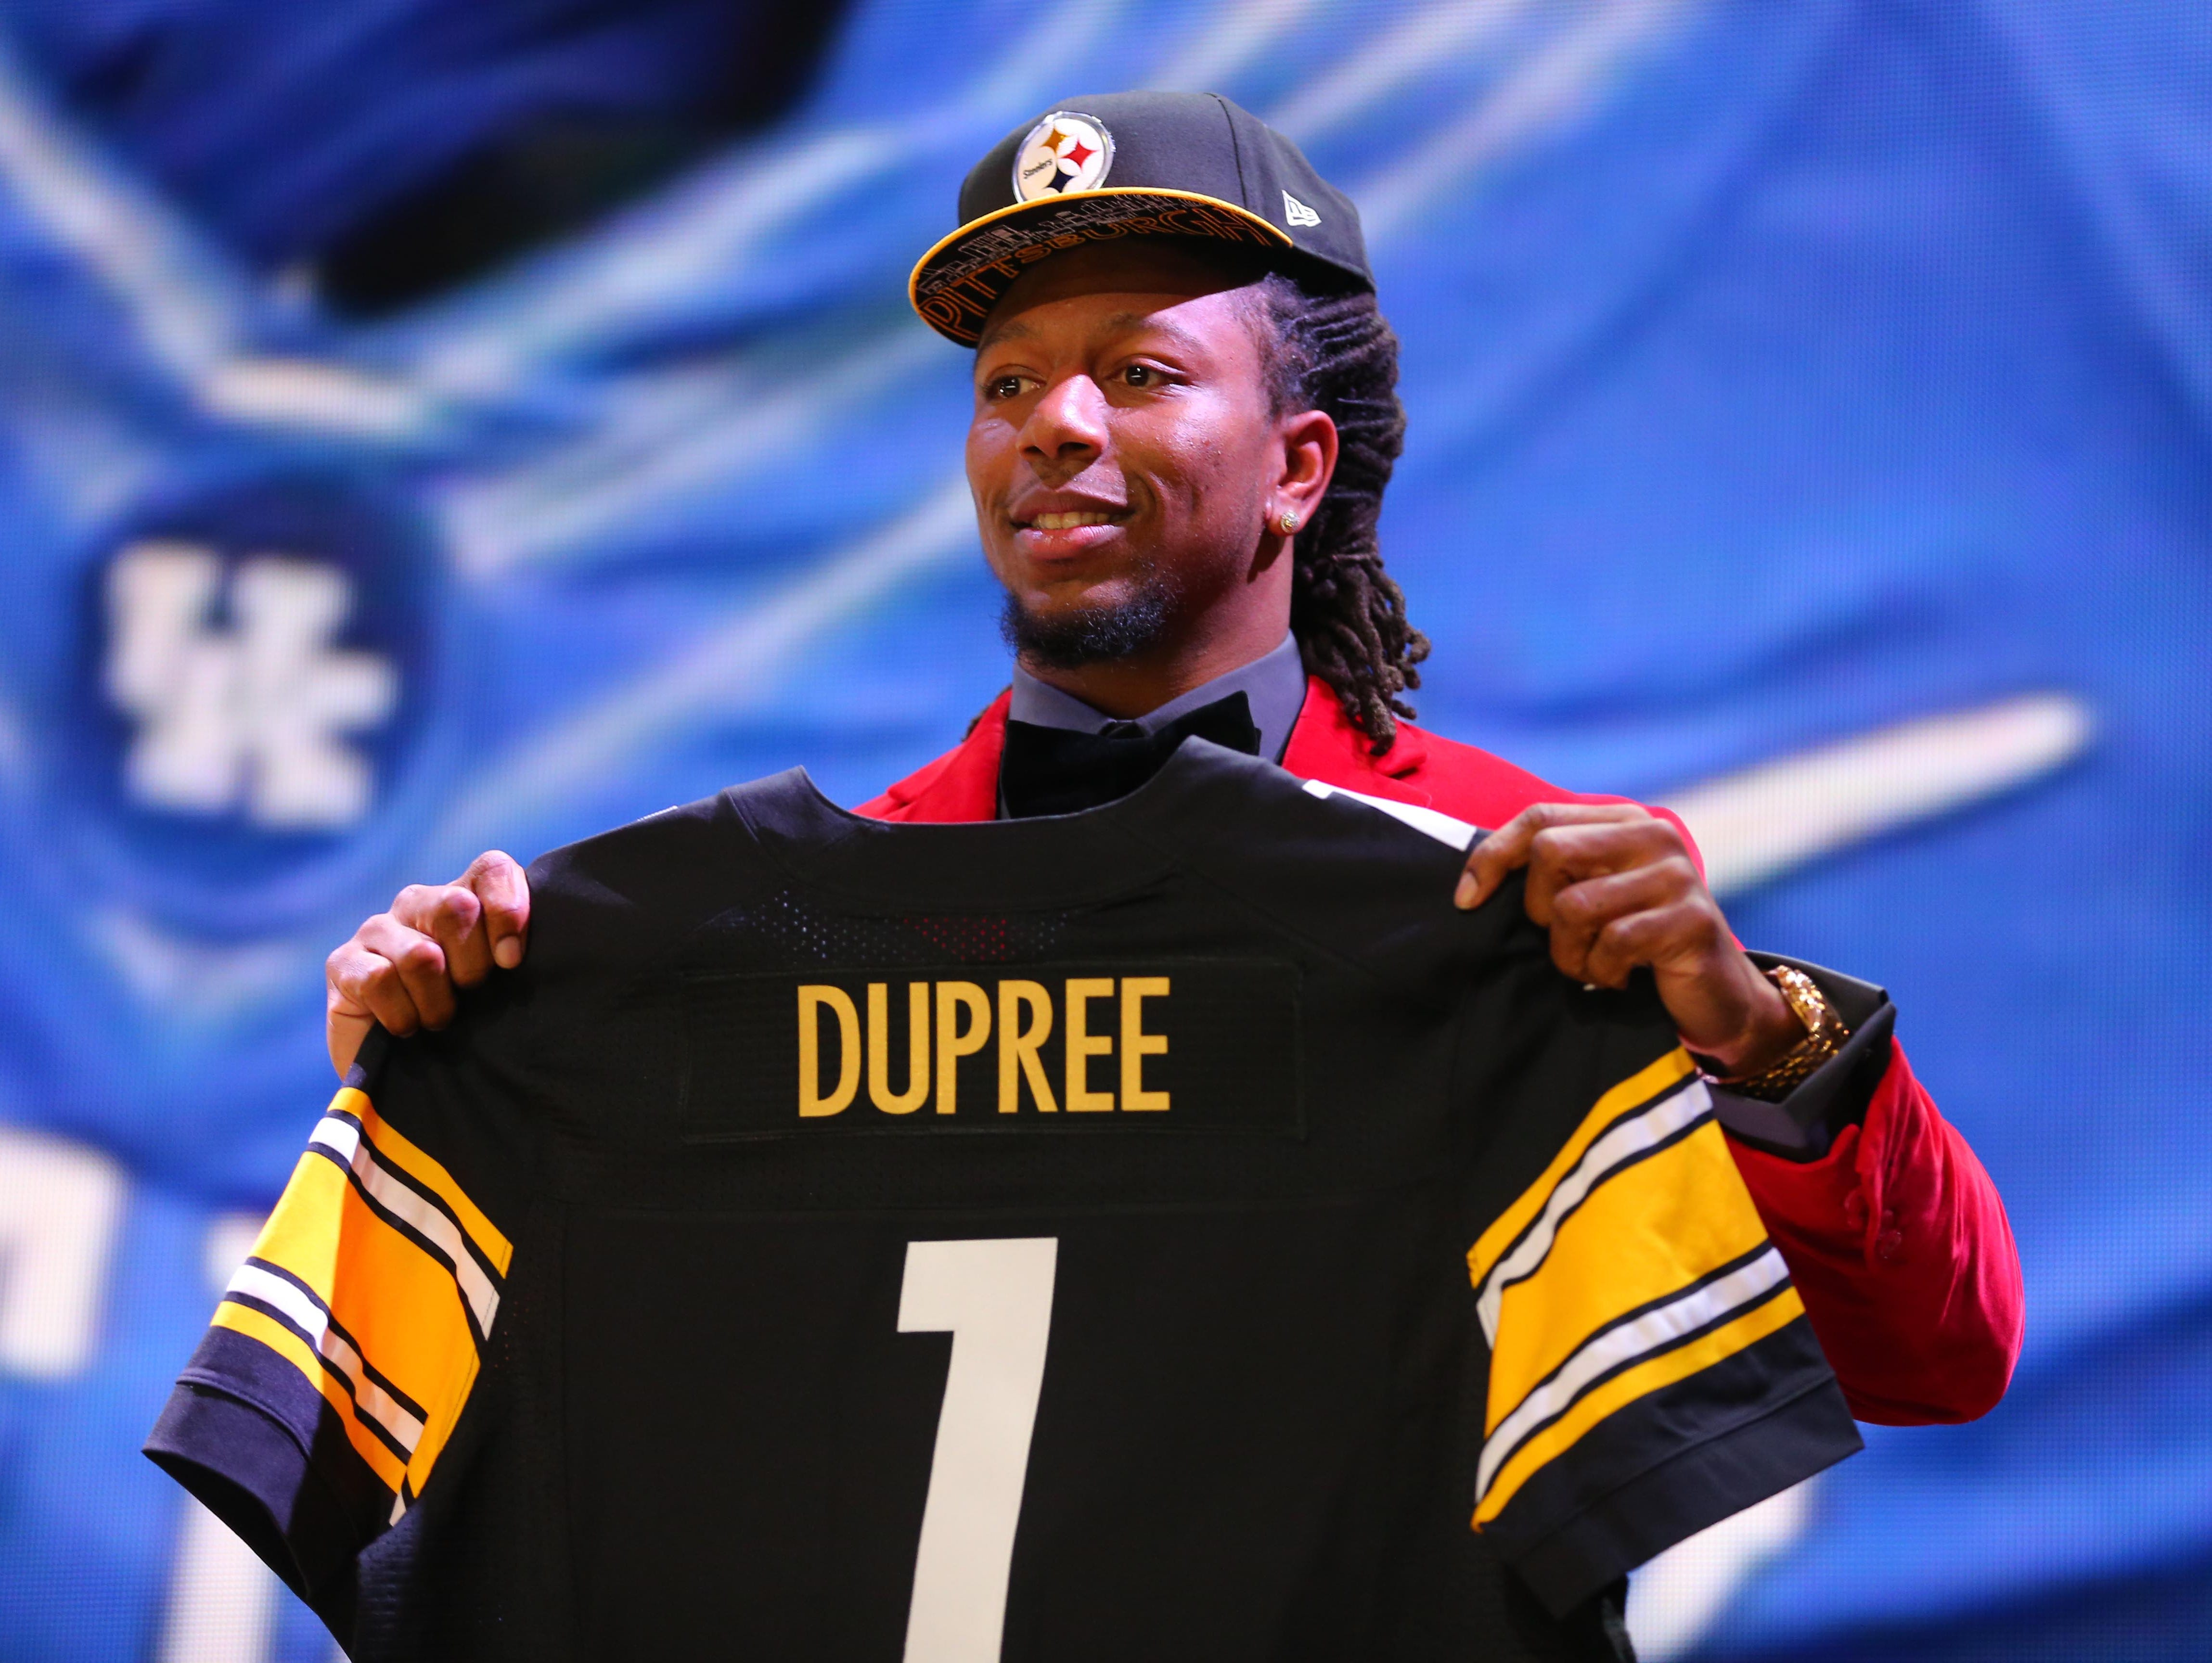 NFL Draft | UK's Dupree goes 22nd to Steelers | USA TODAY ...